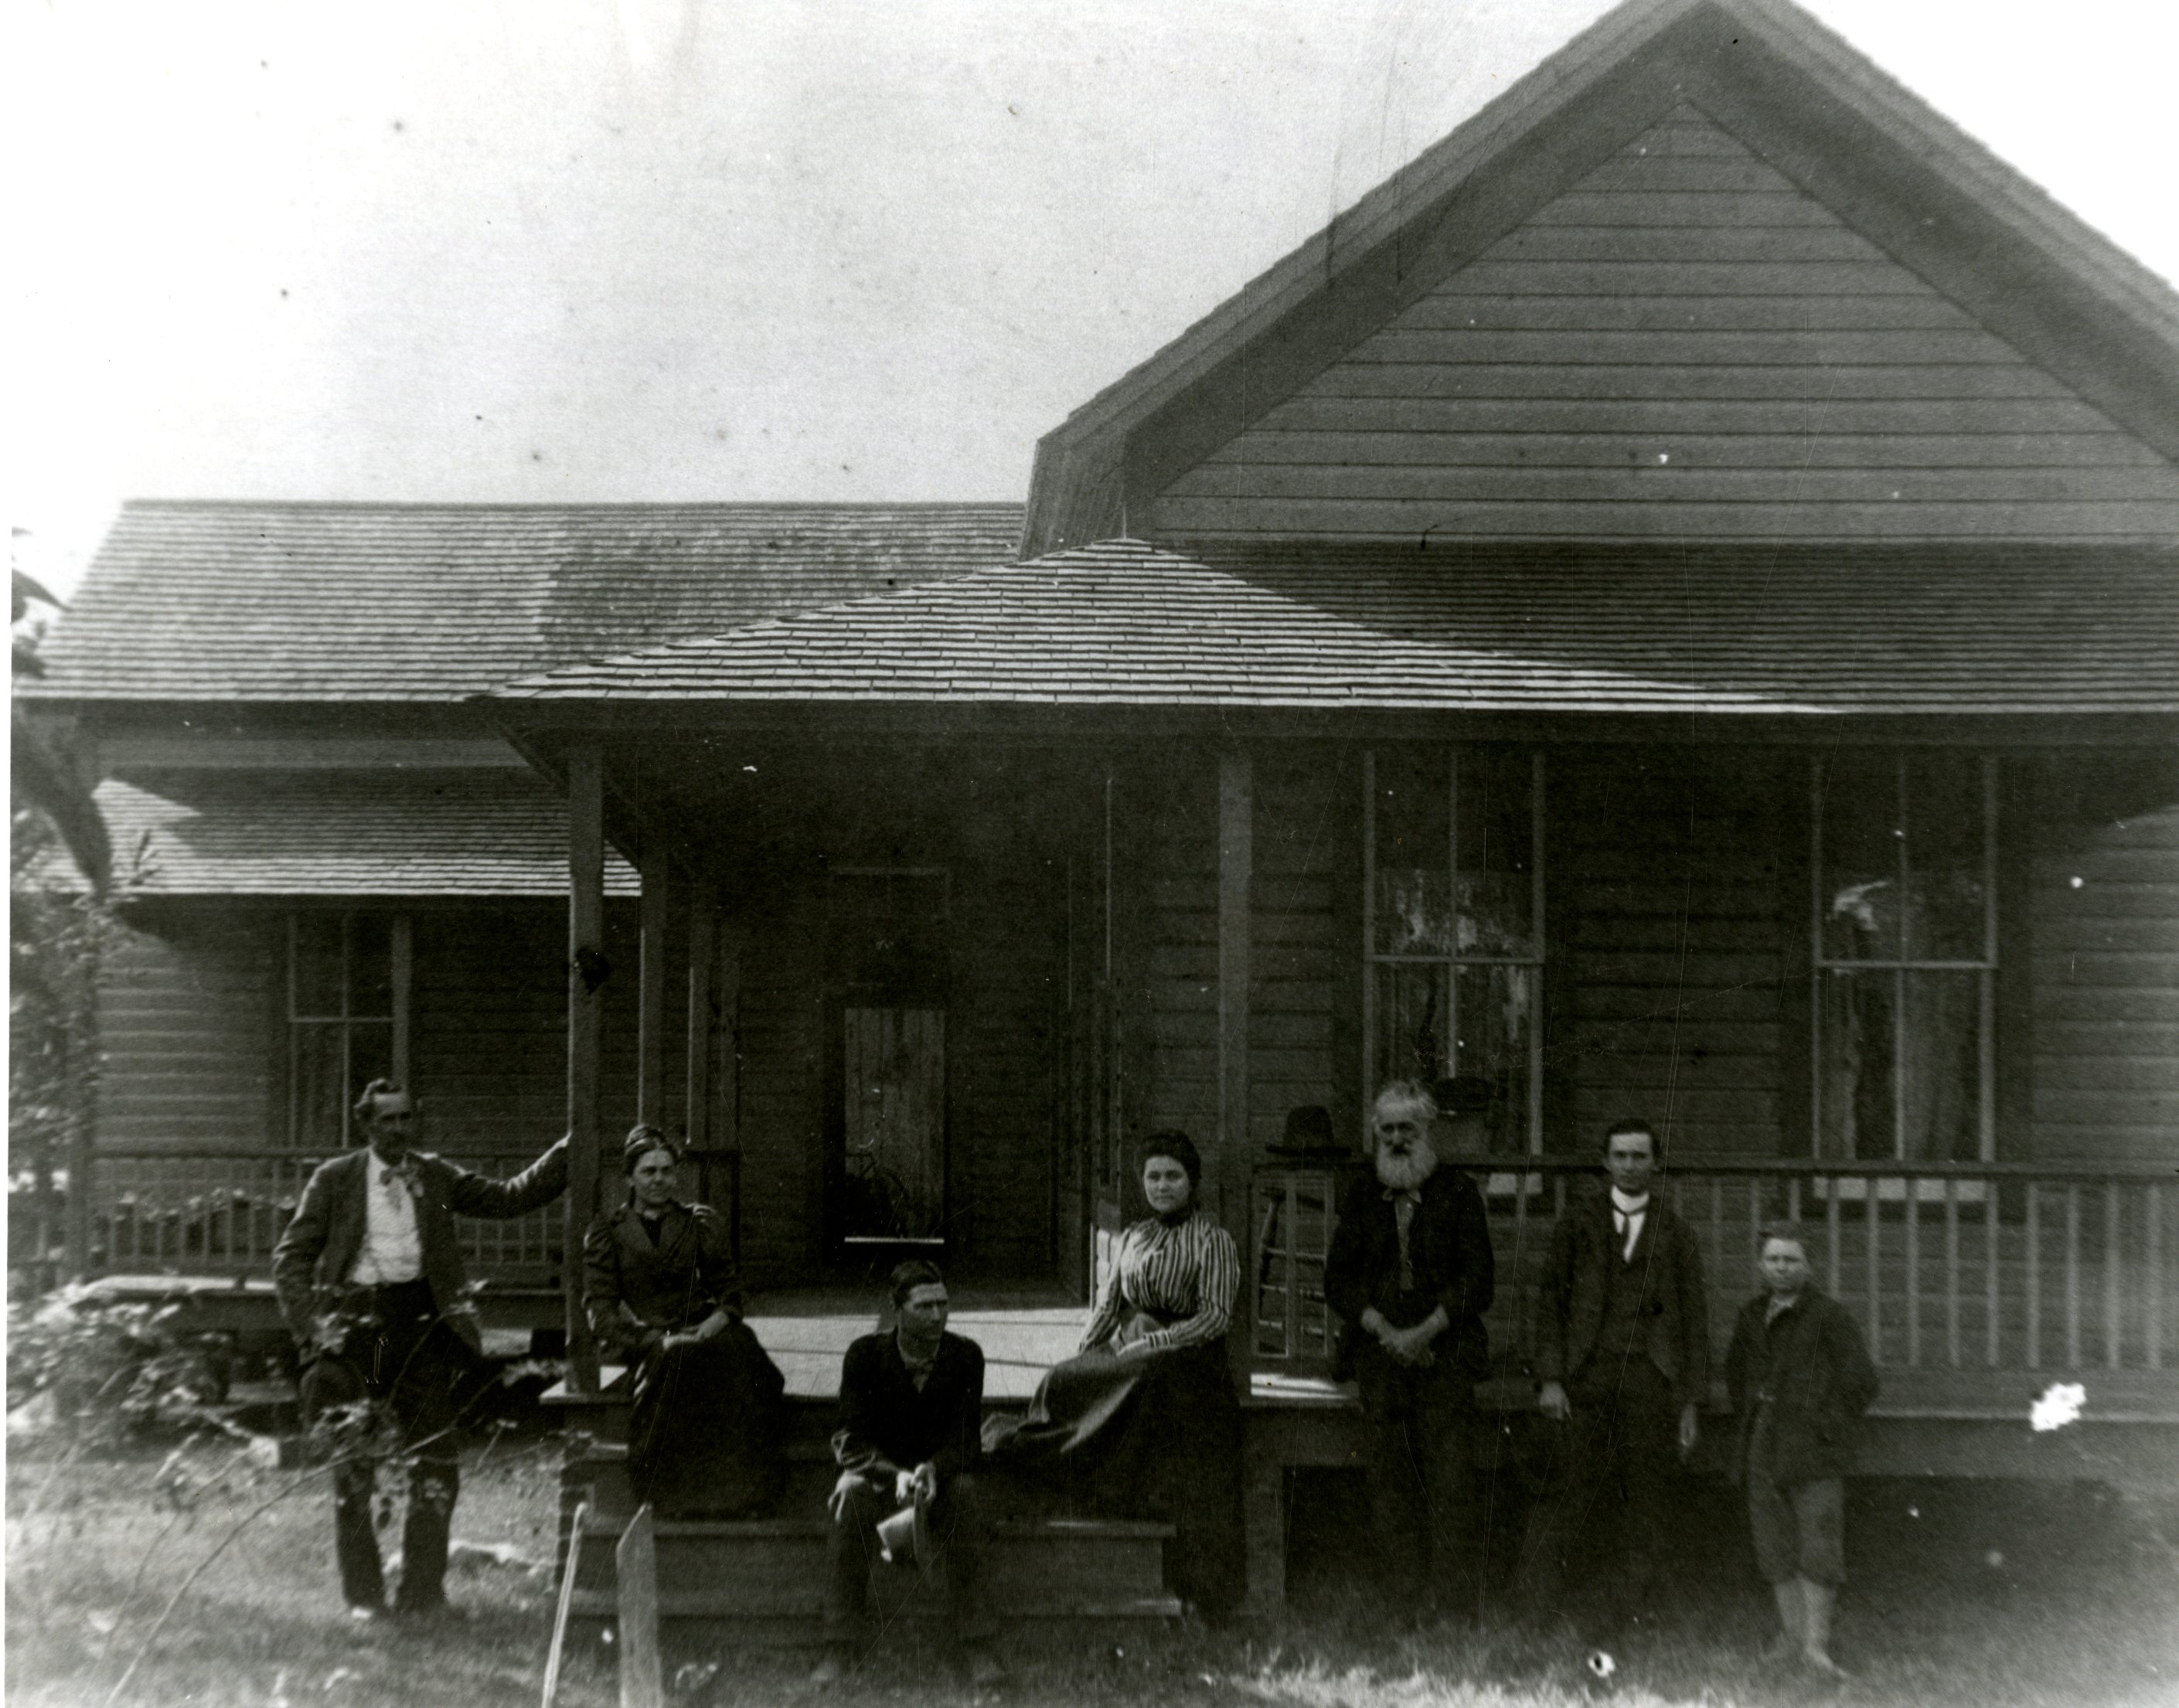 Daniel McMullen House, Largo, Florida, circa 1906.